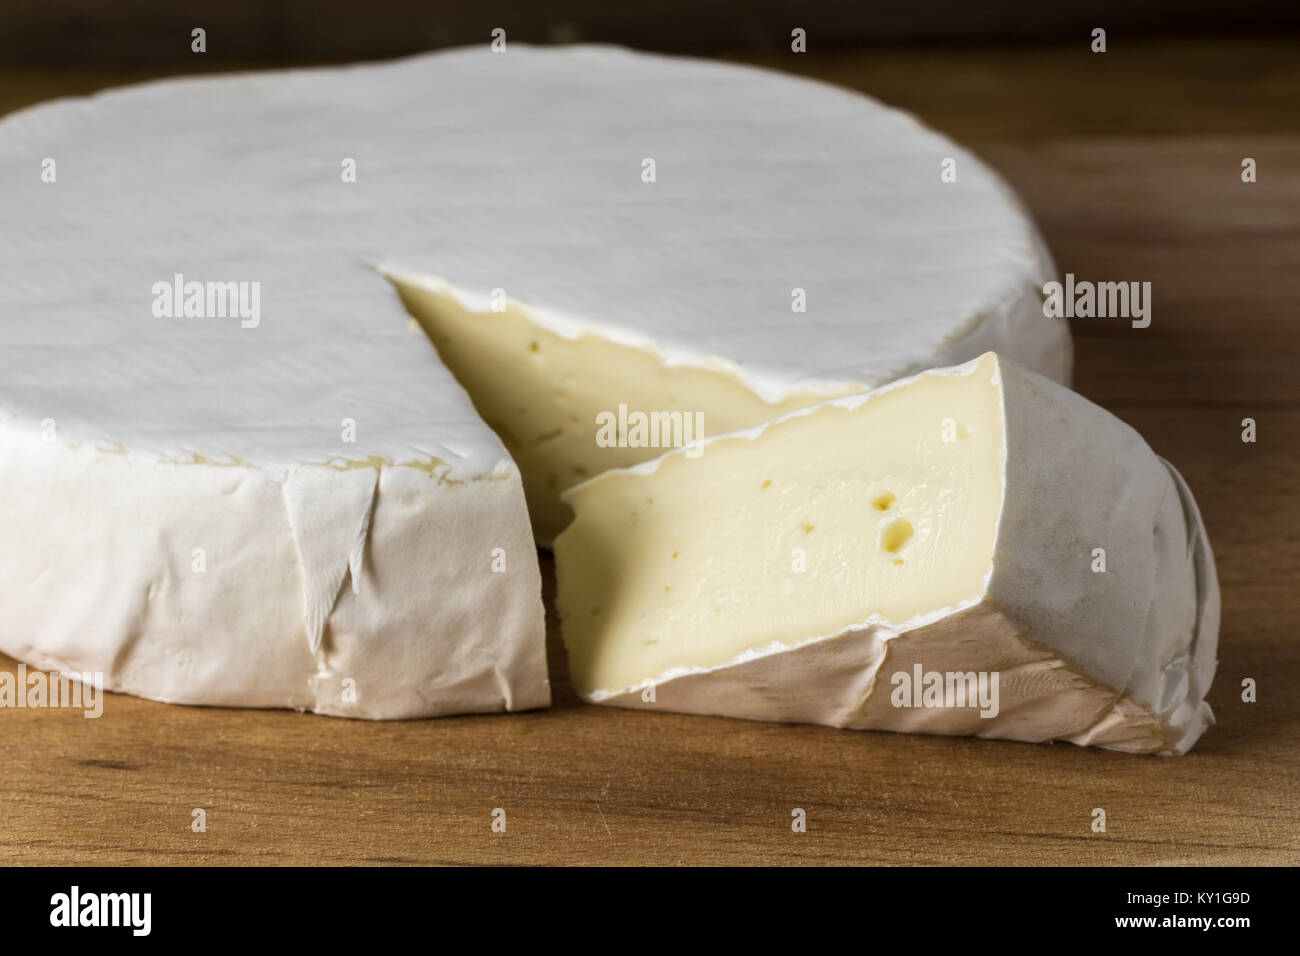 Camembert cheese brie - Stock Image